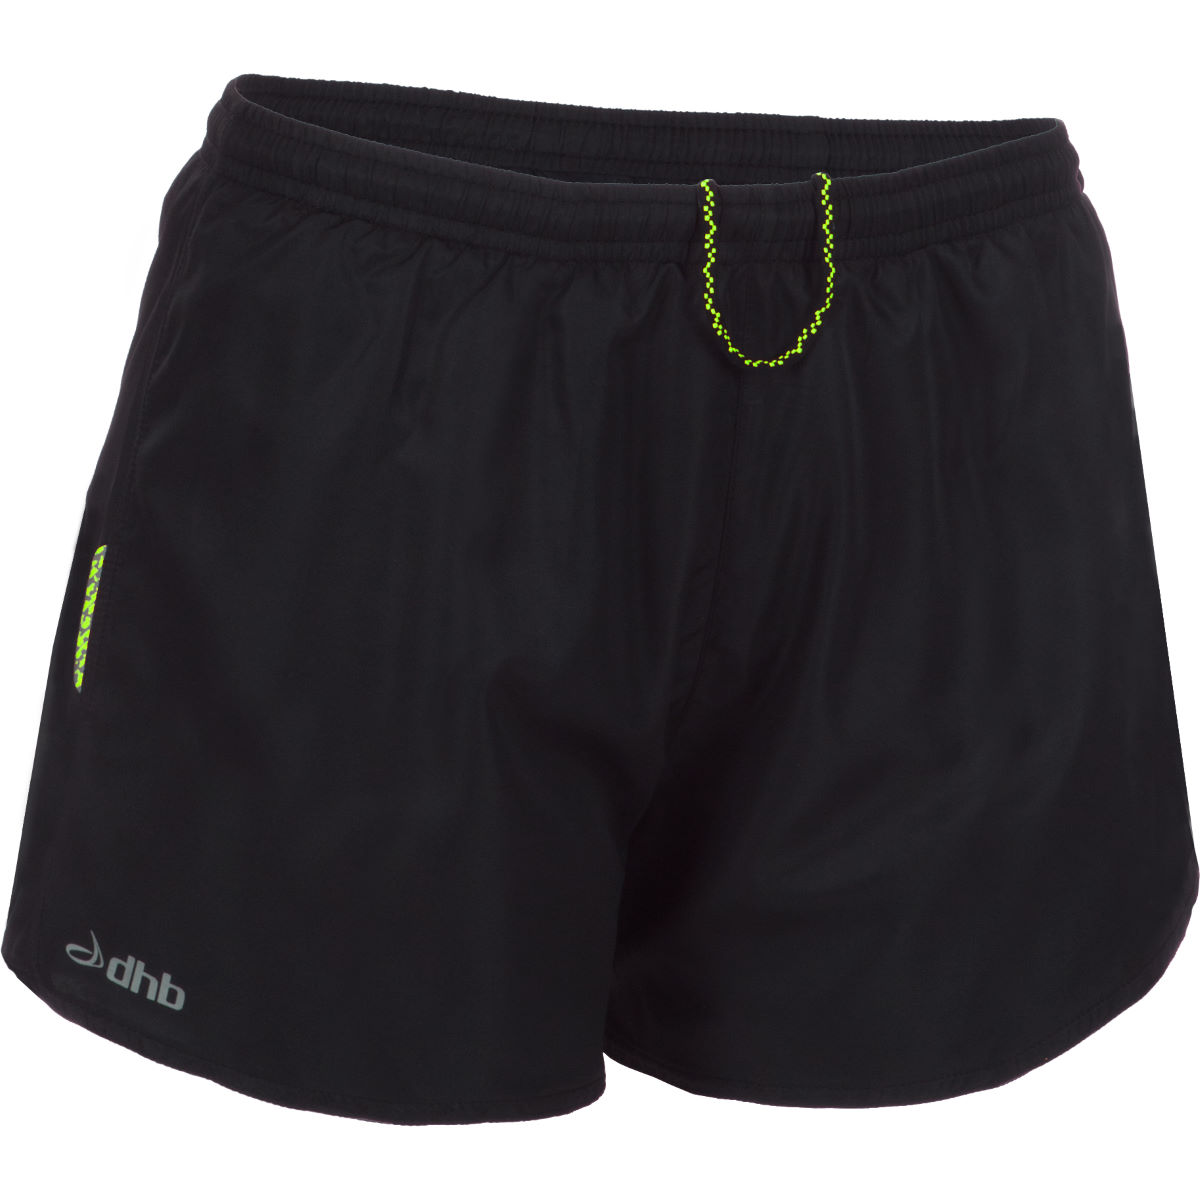 """dhb Women's Letho 3"""" Run Short () - UK 10 Black 